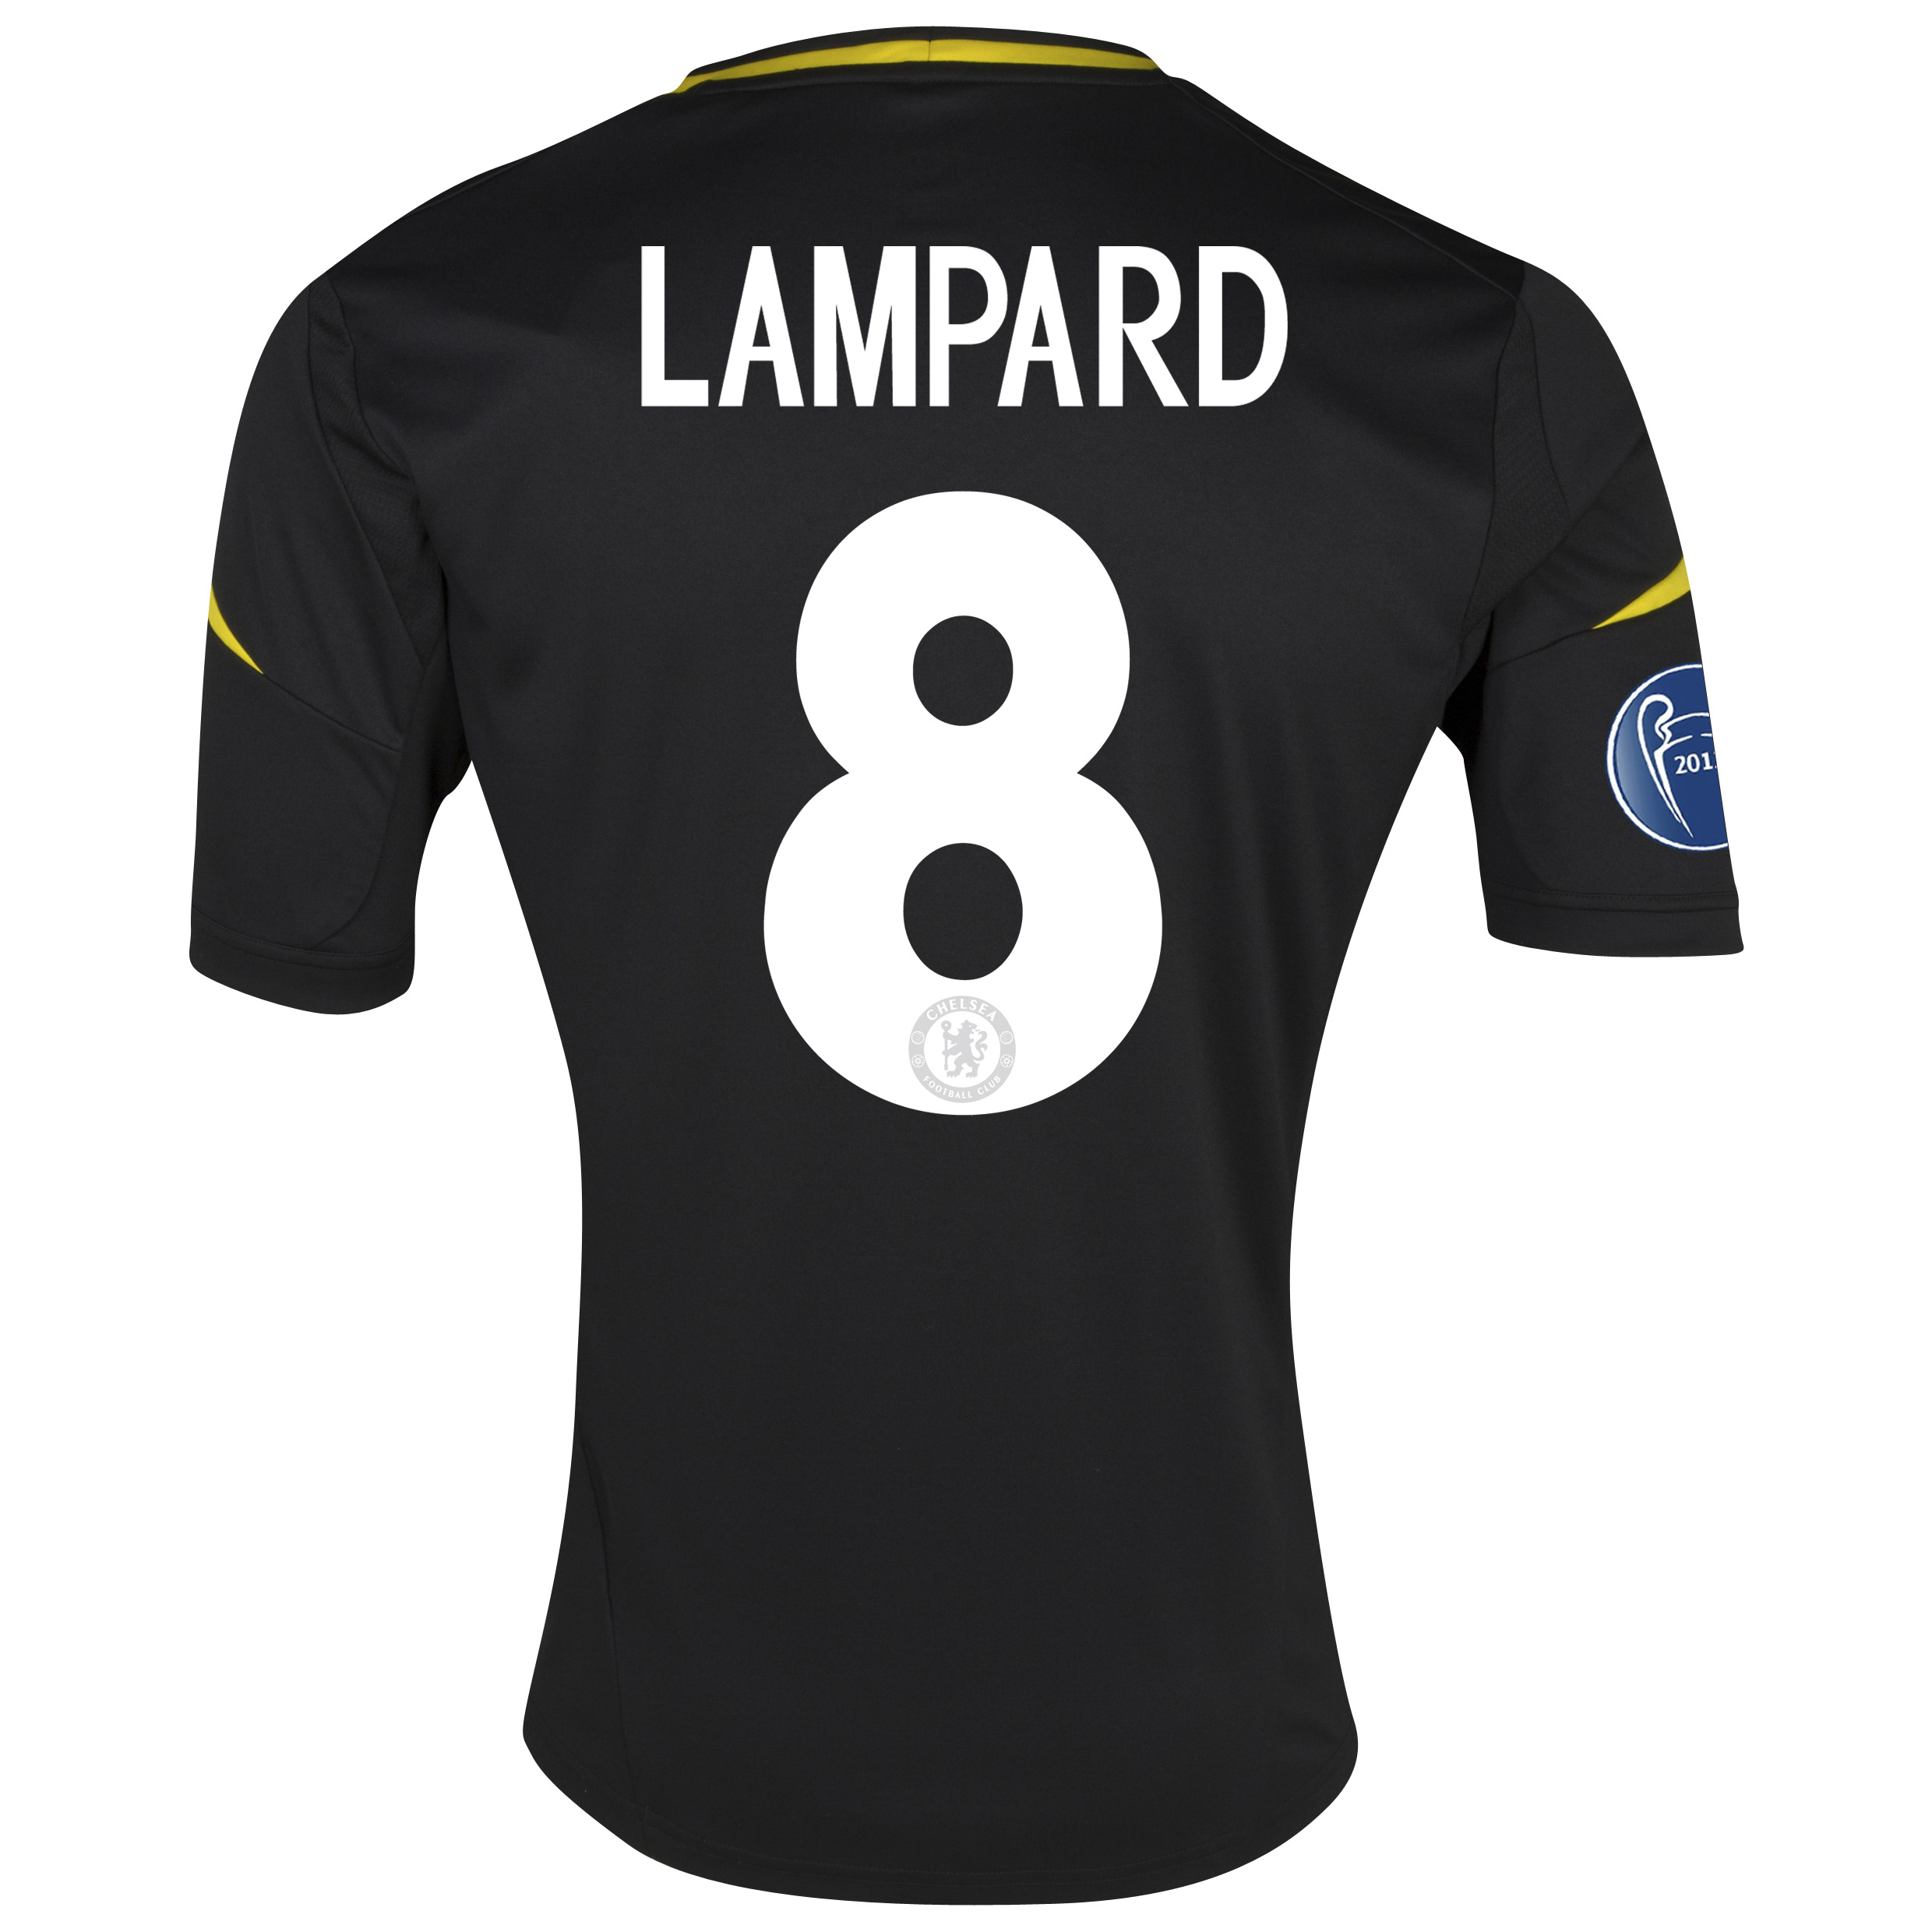 Chelsea UEFA Champions League Third Shirt 2012/13 - Youths with Lampard 8 printing